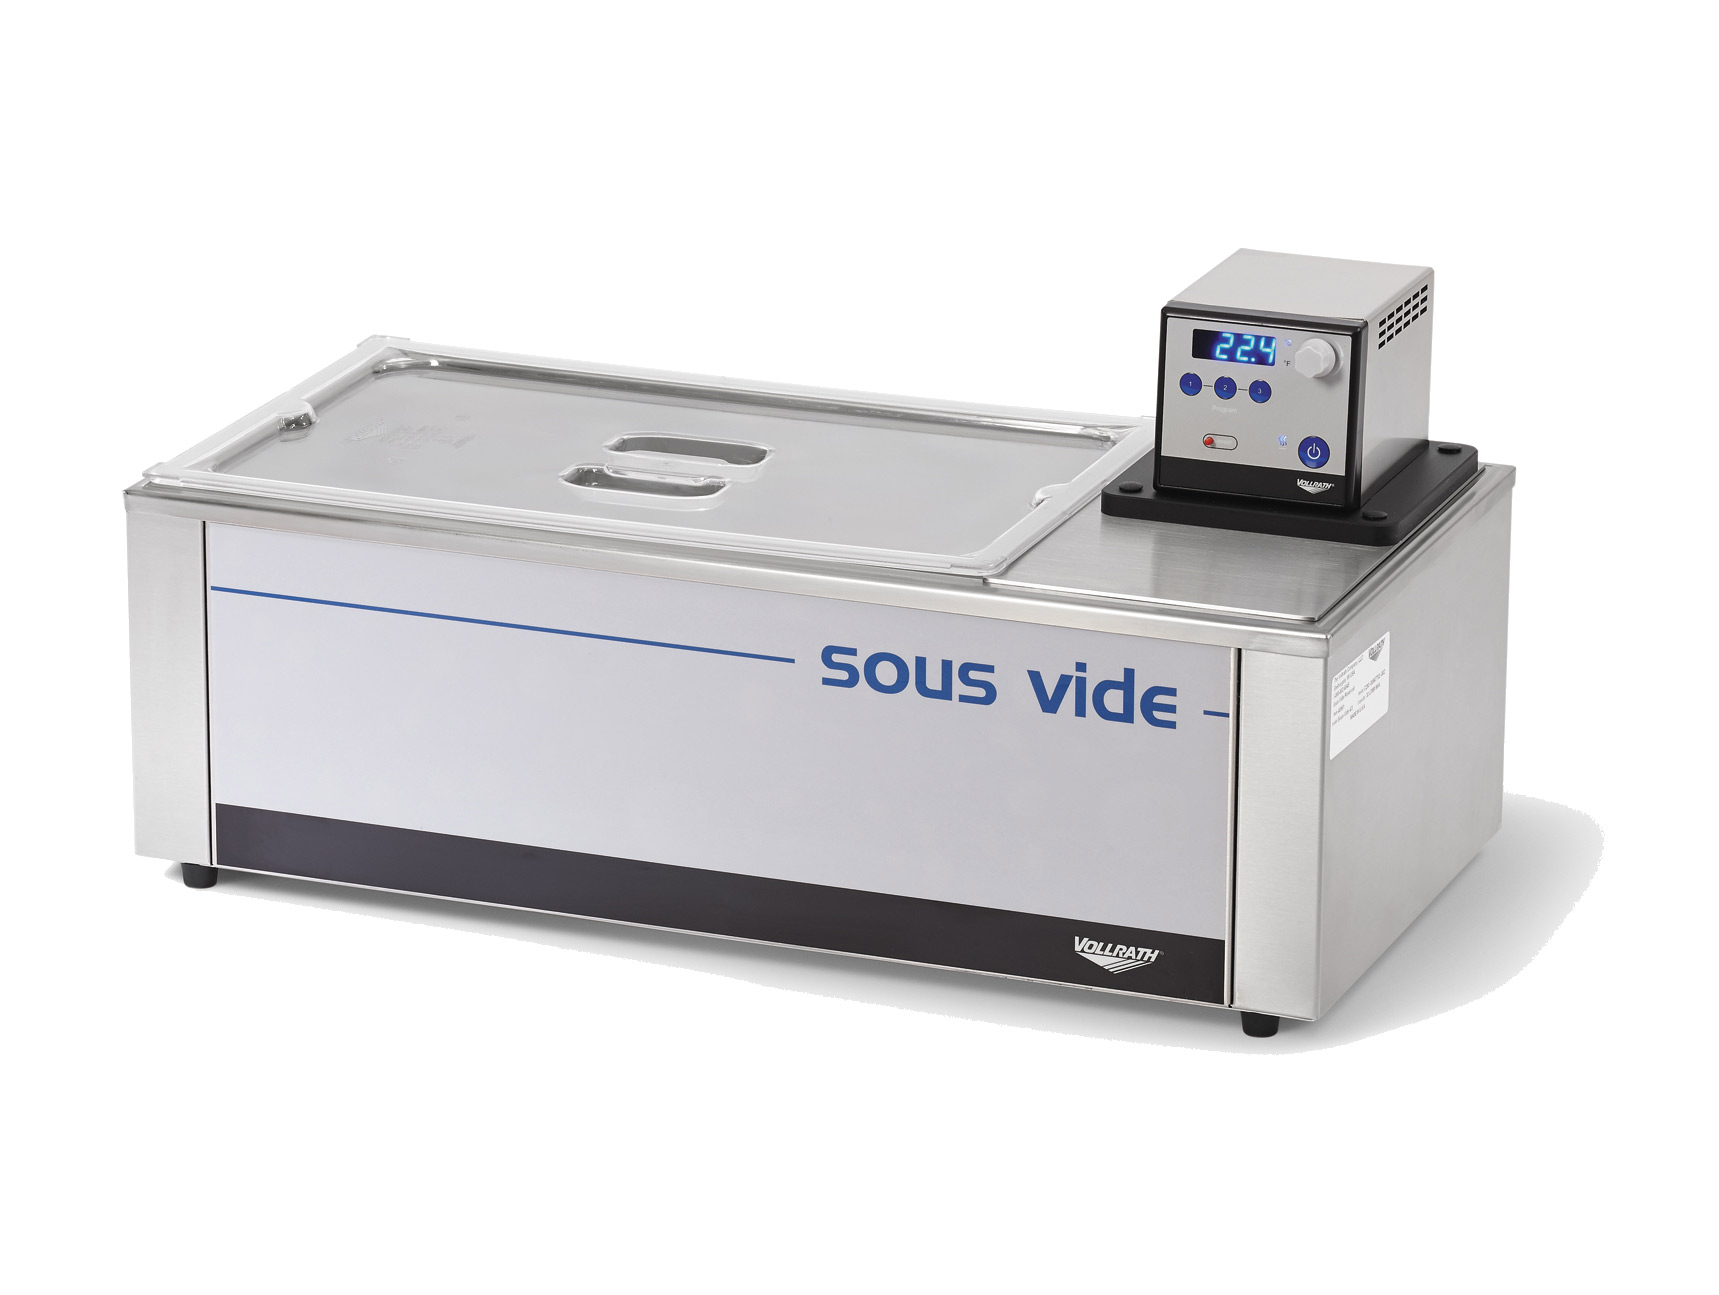 Vollrath 40861 sous vide cooker